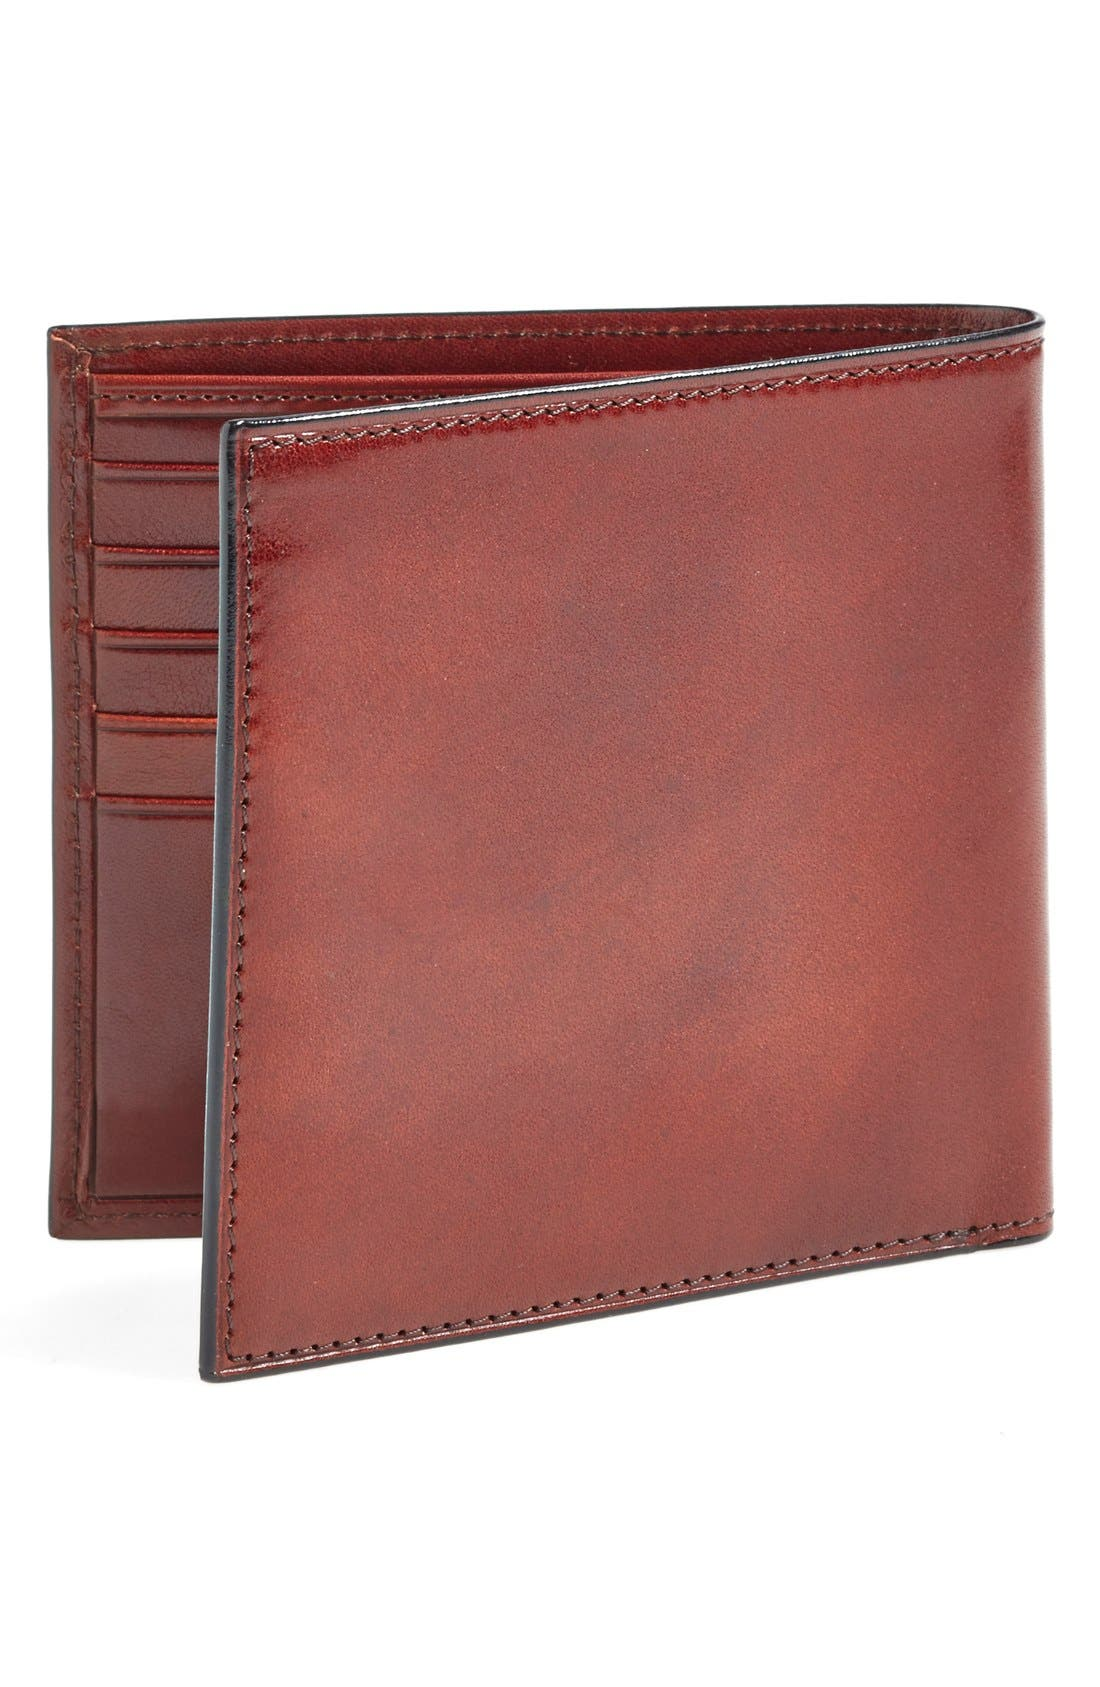 Alternate Image 3  - Bosca 'Old Leather' Bifold Wallet